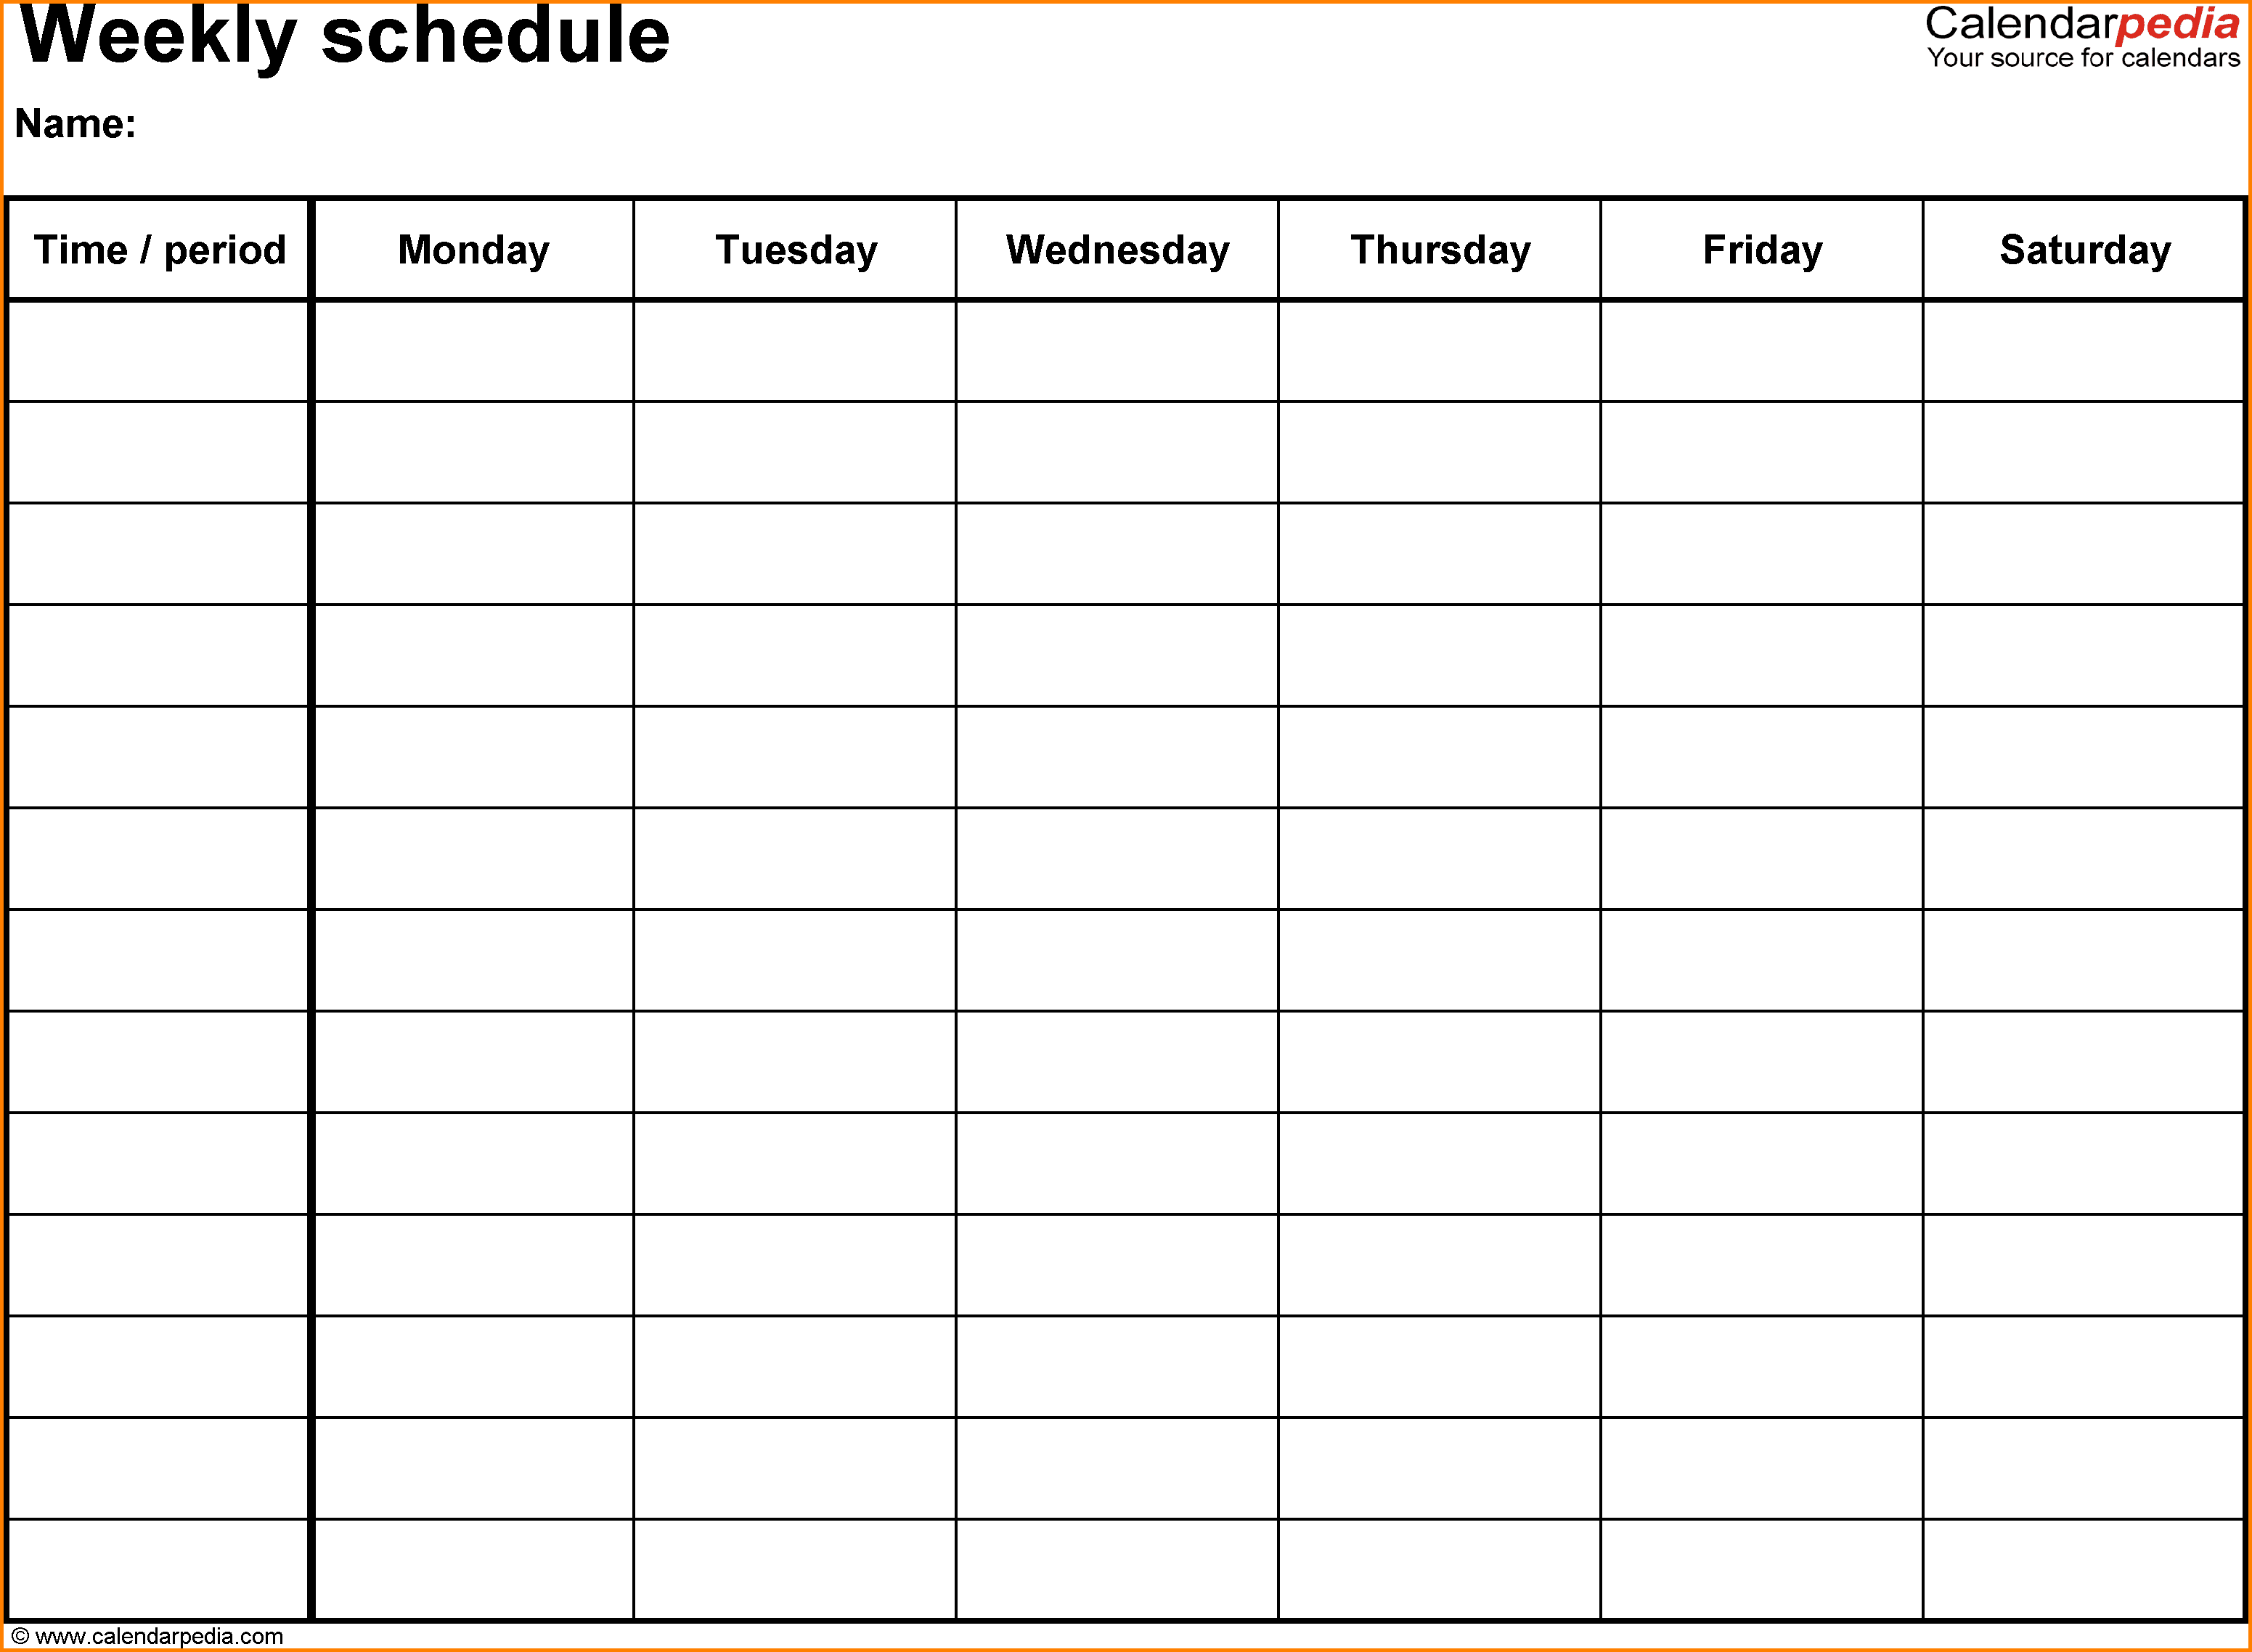 Uploaded By, Adham Wasim - PNG Timetable